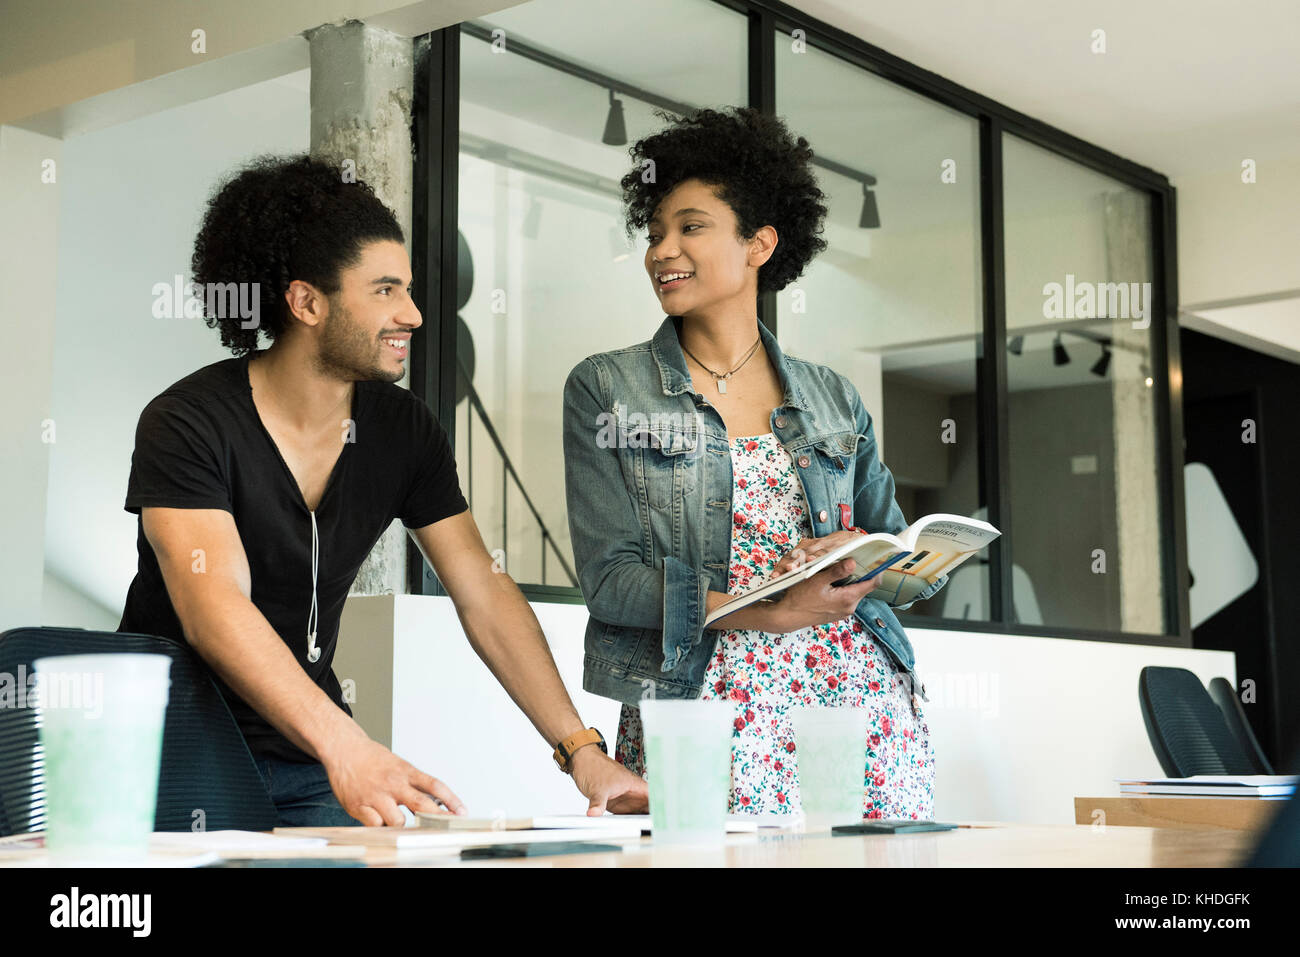 Colleagues working together in office Stock Photo